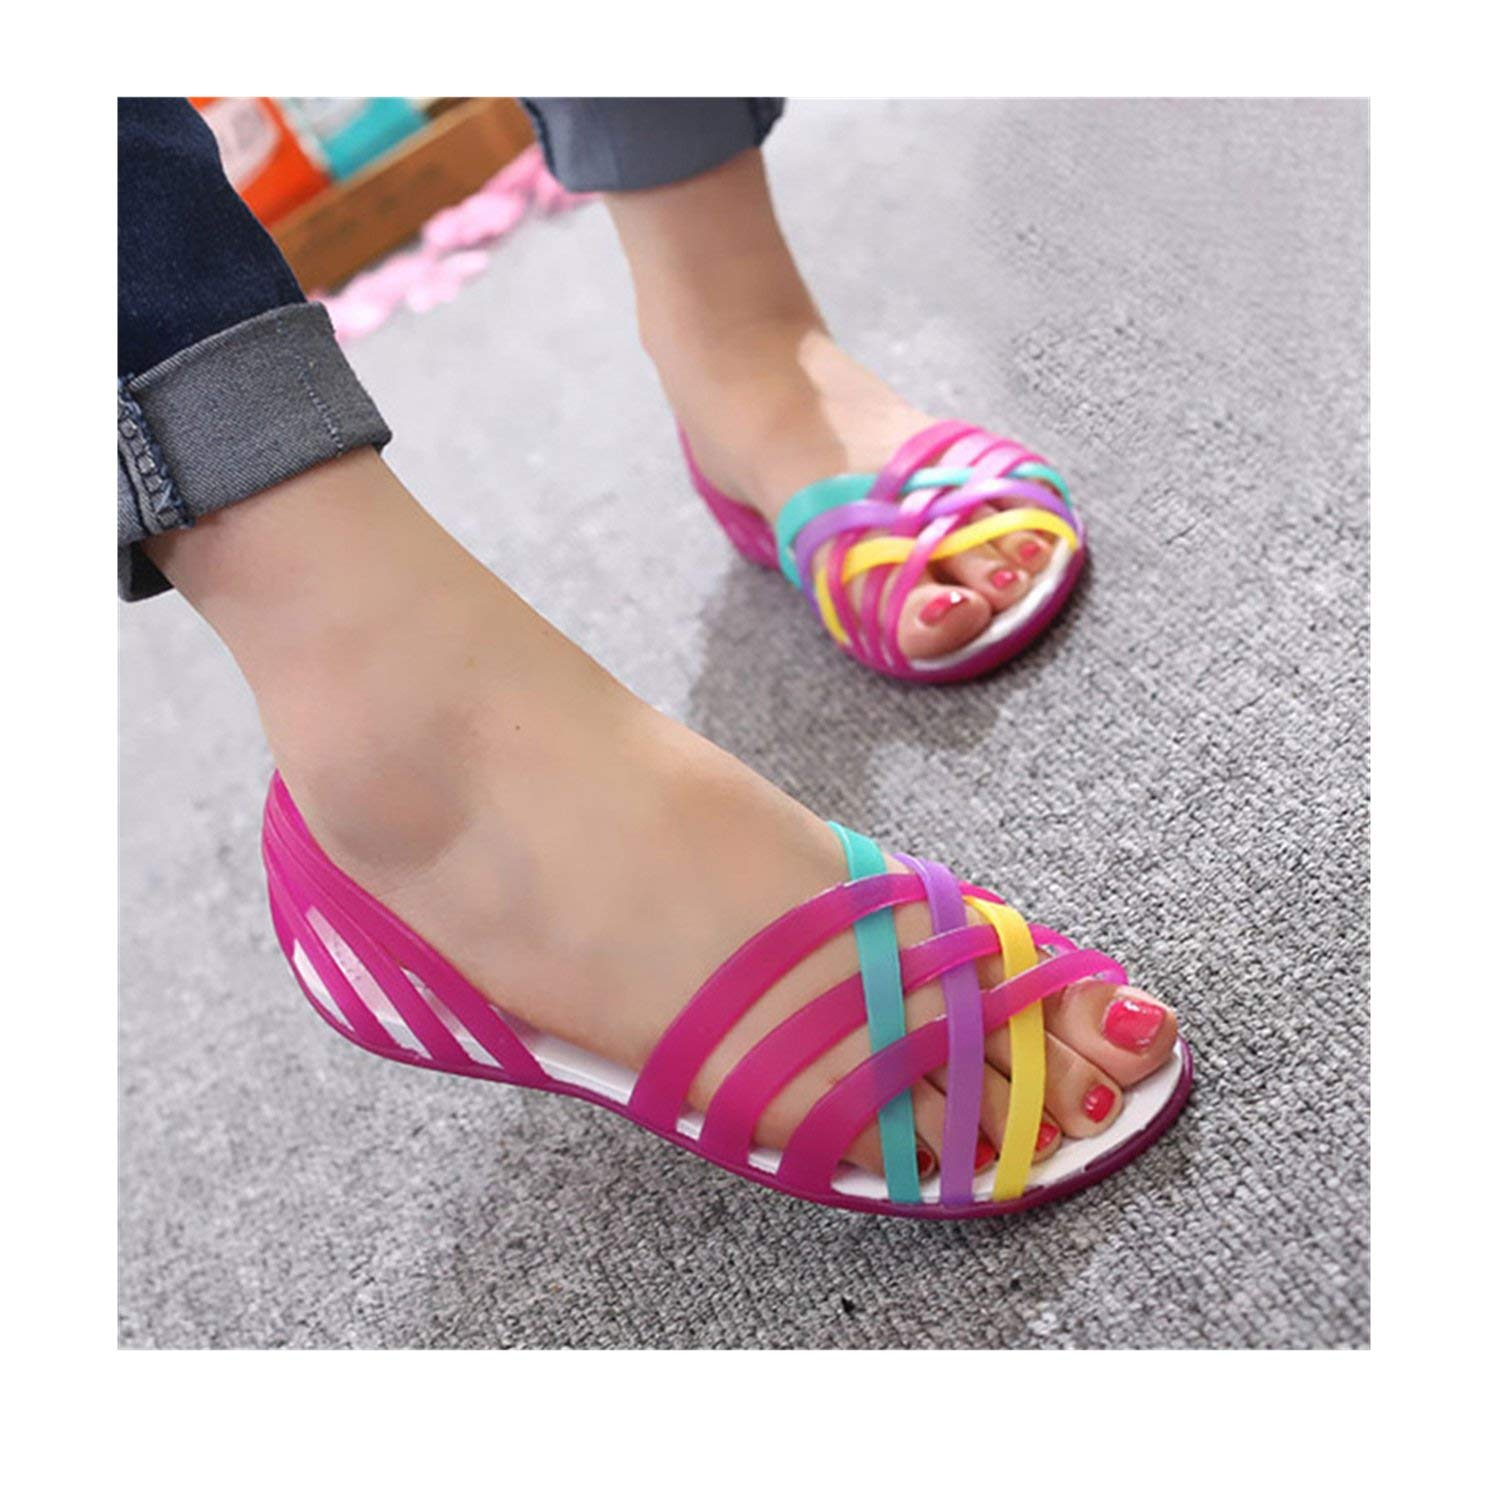 f10ba1e3d3f Get Quotations · Saneoo Women Sandals Summer New Candy Color Women Shoes  Beach Valentine Rainbow Croc Jelly Shoes Woman